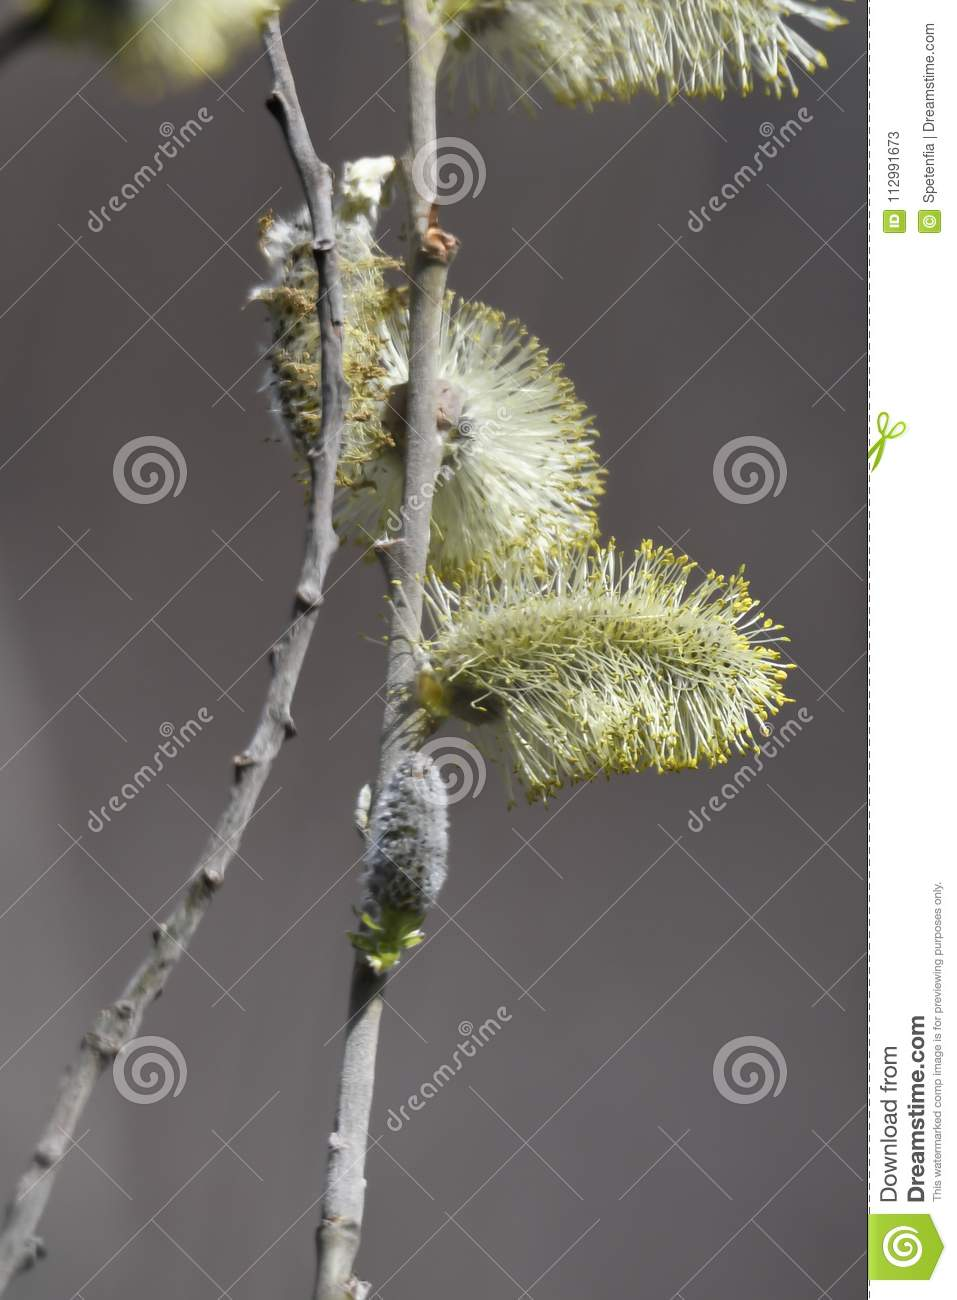 Buds on the tree